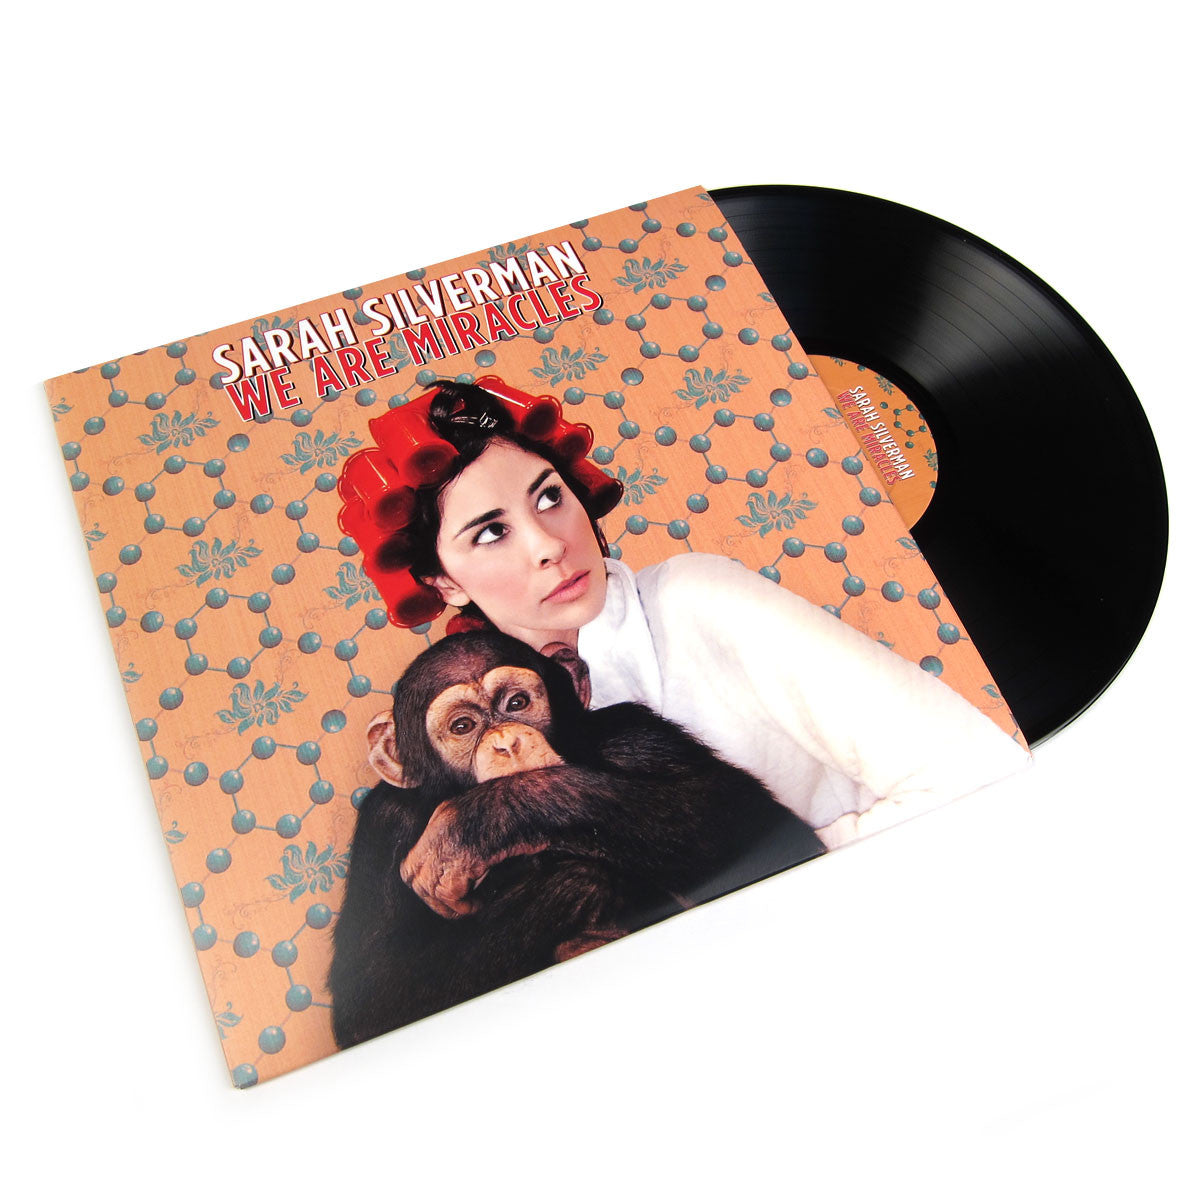 Sarah Silverman: We Are Miracles (Free MP3) Vinyl LP